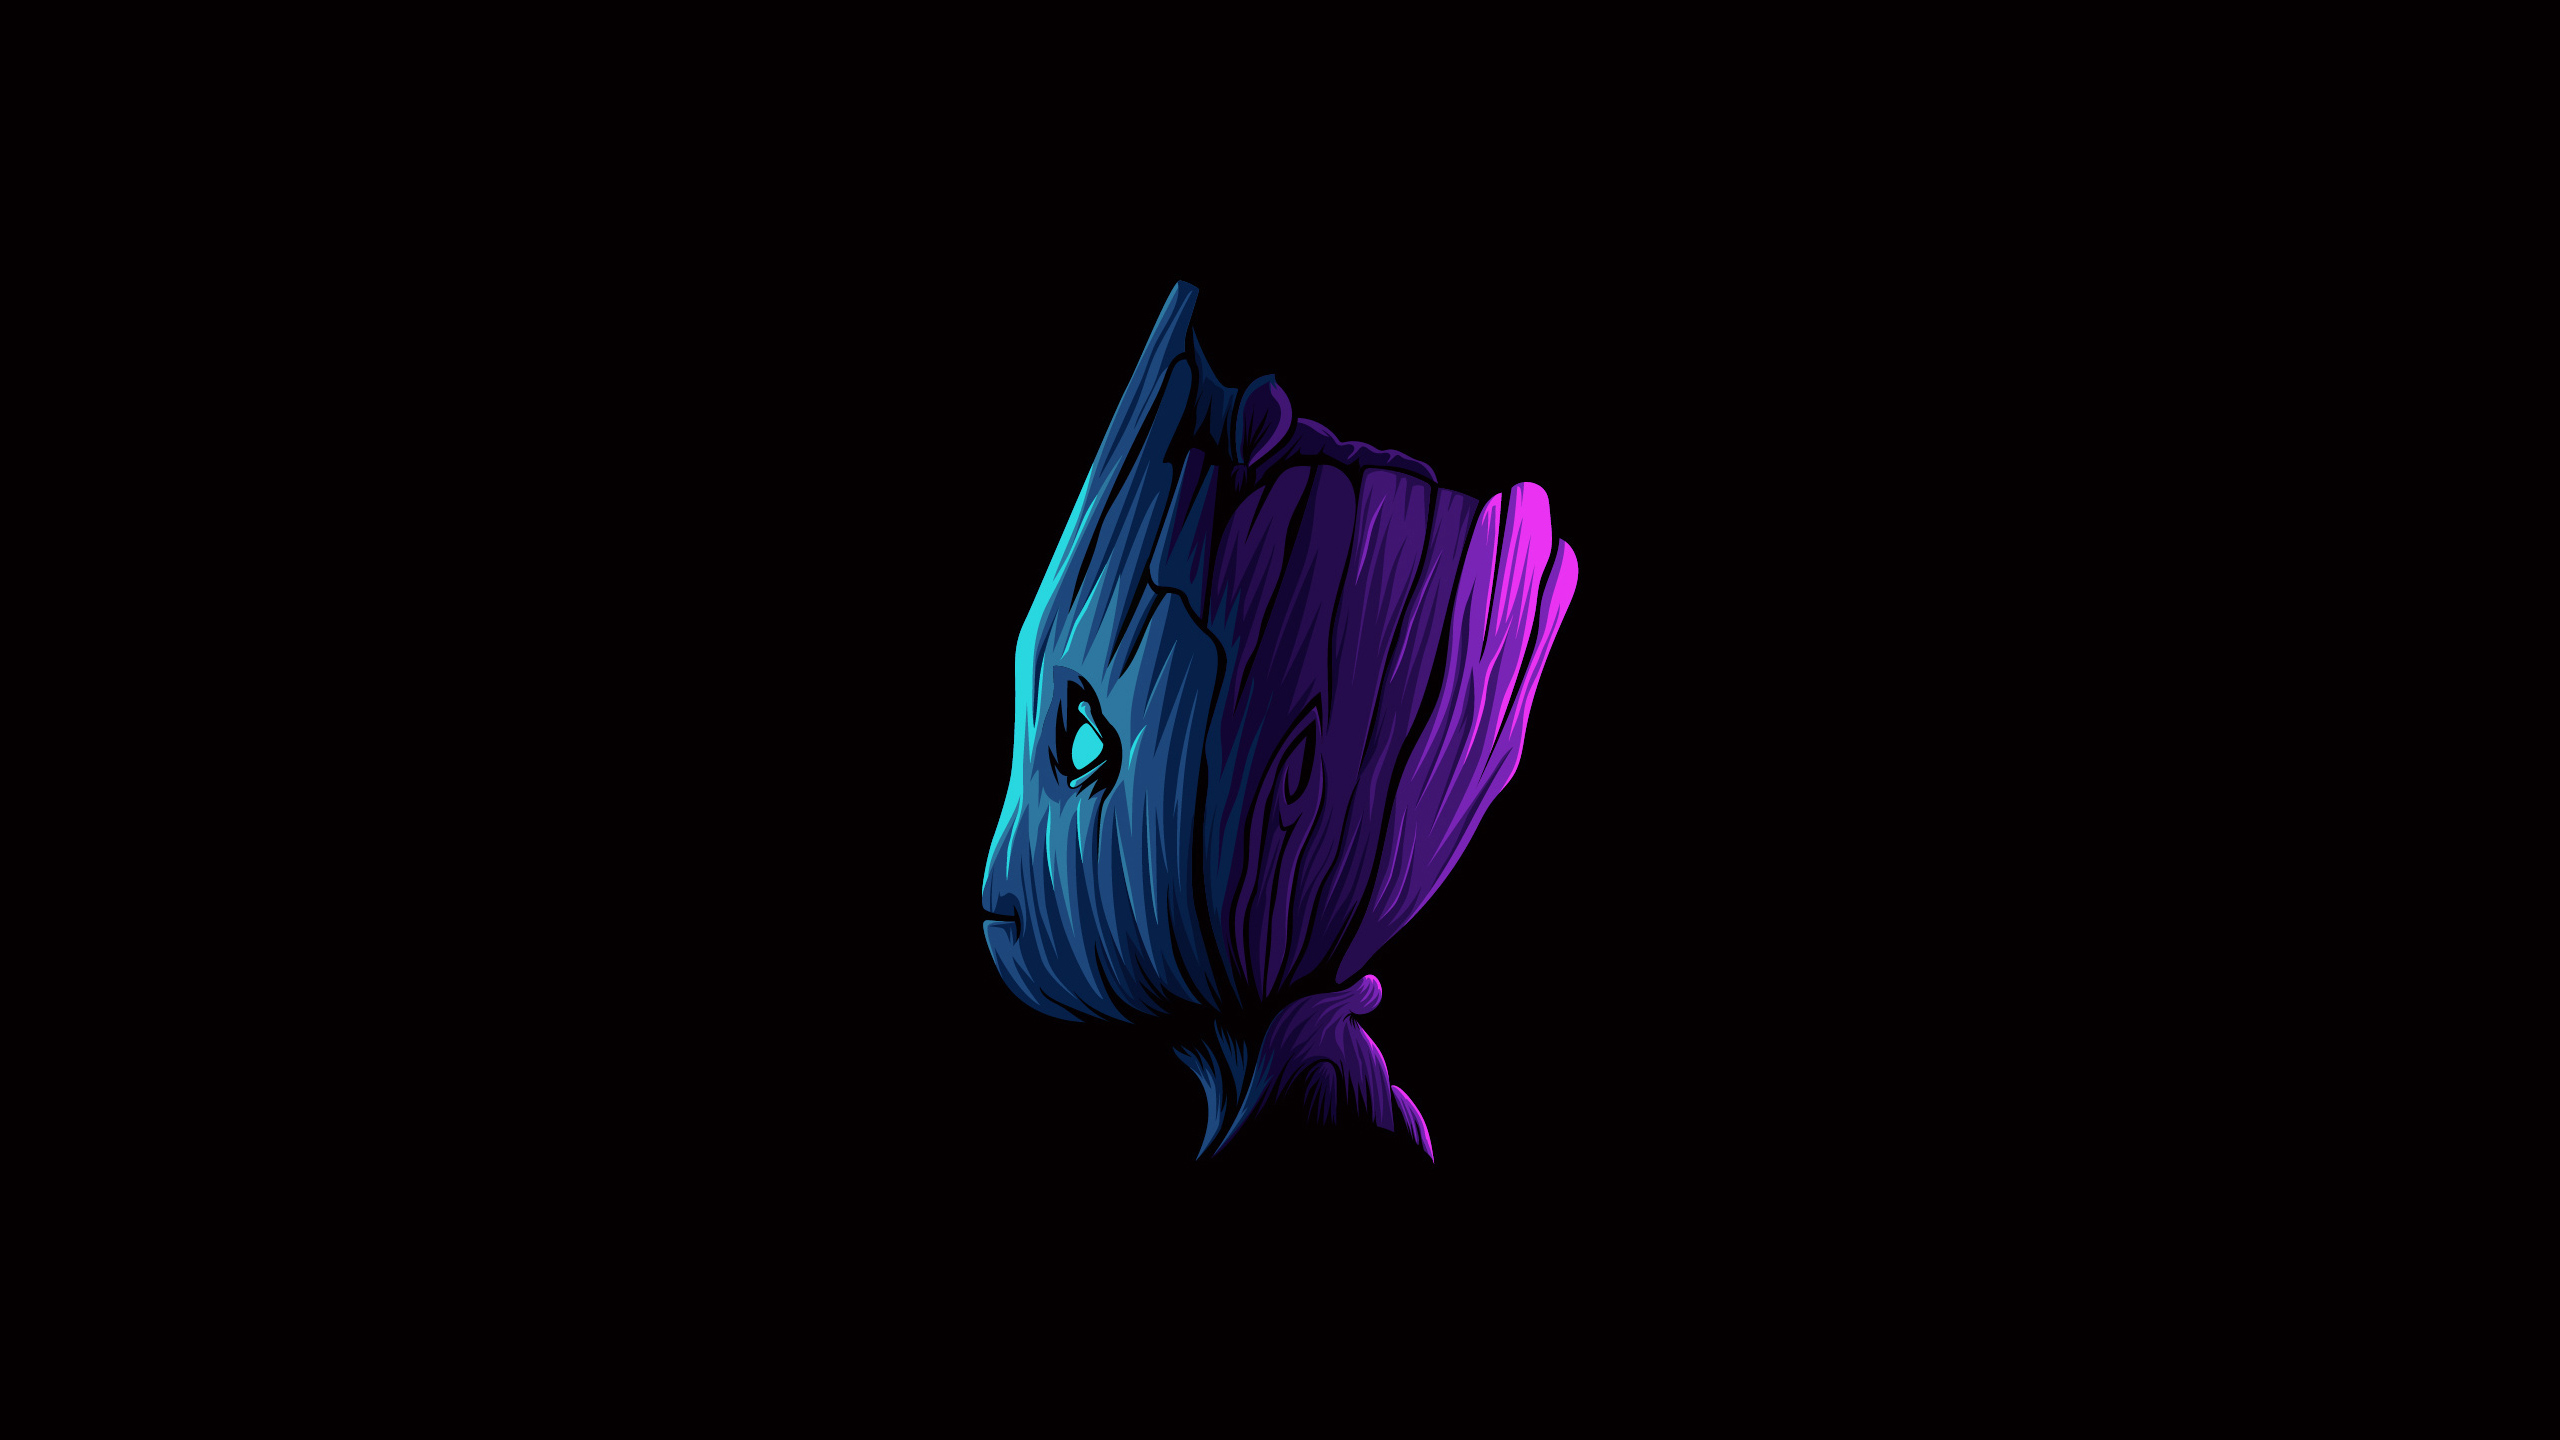 General 2560x1440 digital digital art artwork illustration simple simple background minimalism black colorful Marvel Comics Marvel Cinematic Universe superhero Groot Baby Groot Guardians of the Galaxy fictional fictional character character design  black background Vectto